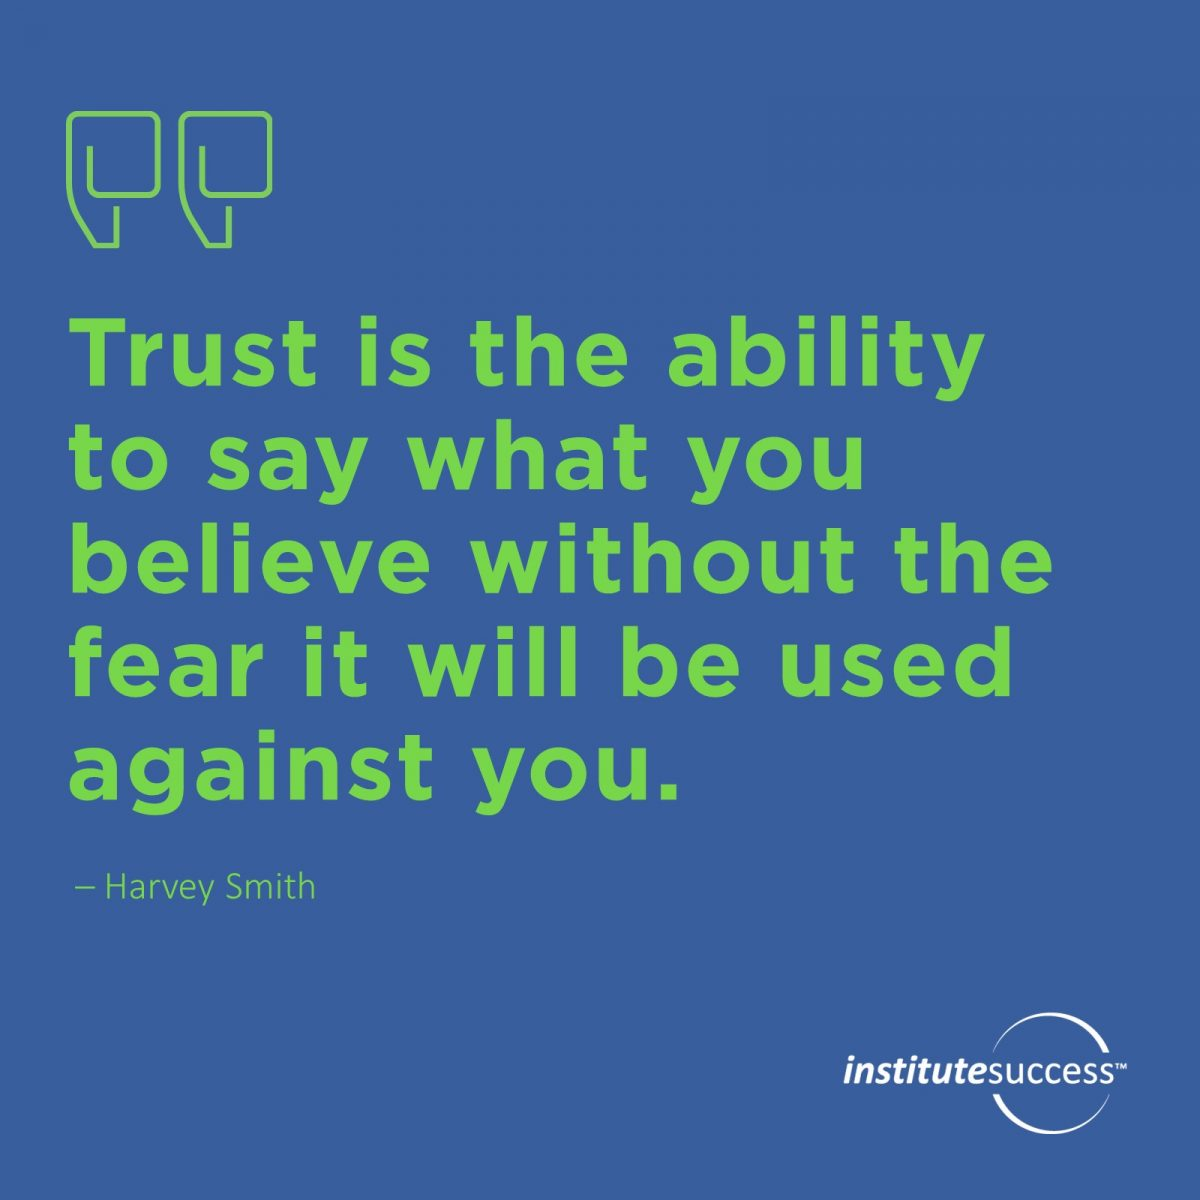 Trust is the ability to say what you believe without the fear it will be used against you. 	Harvey Smith